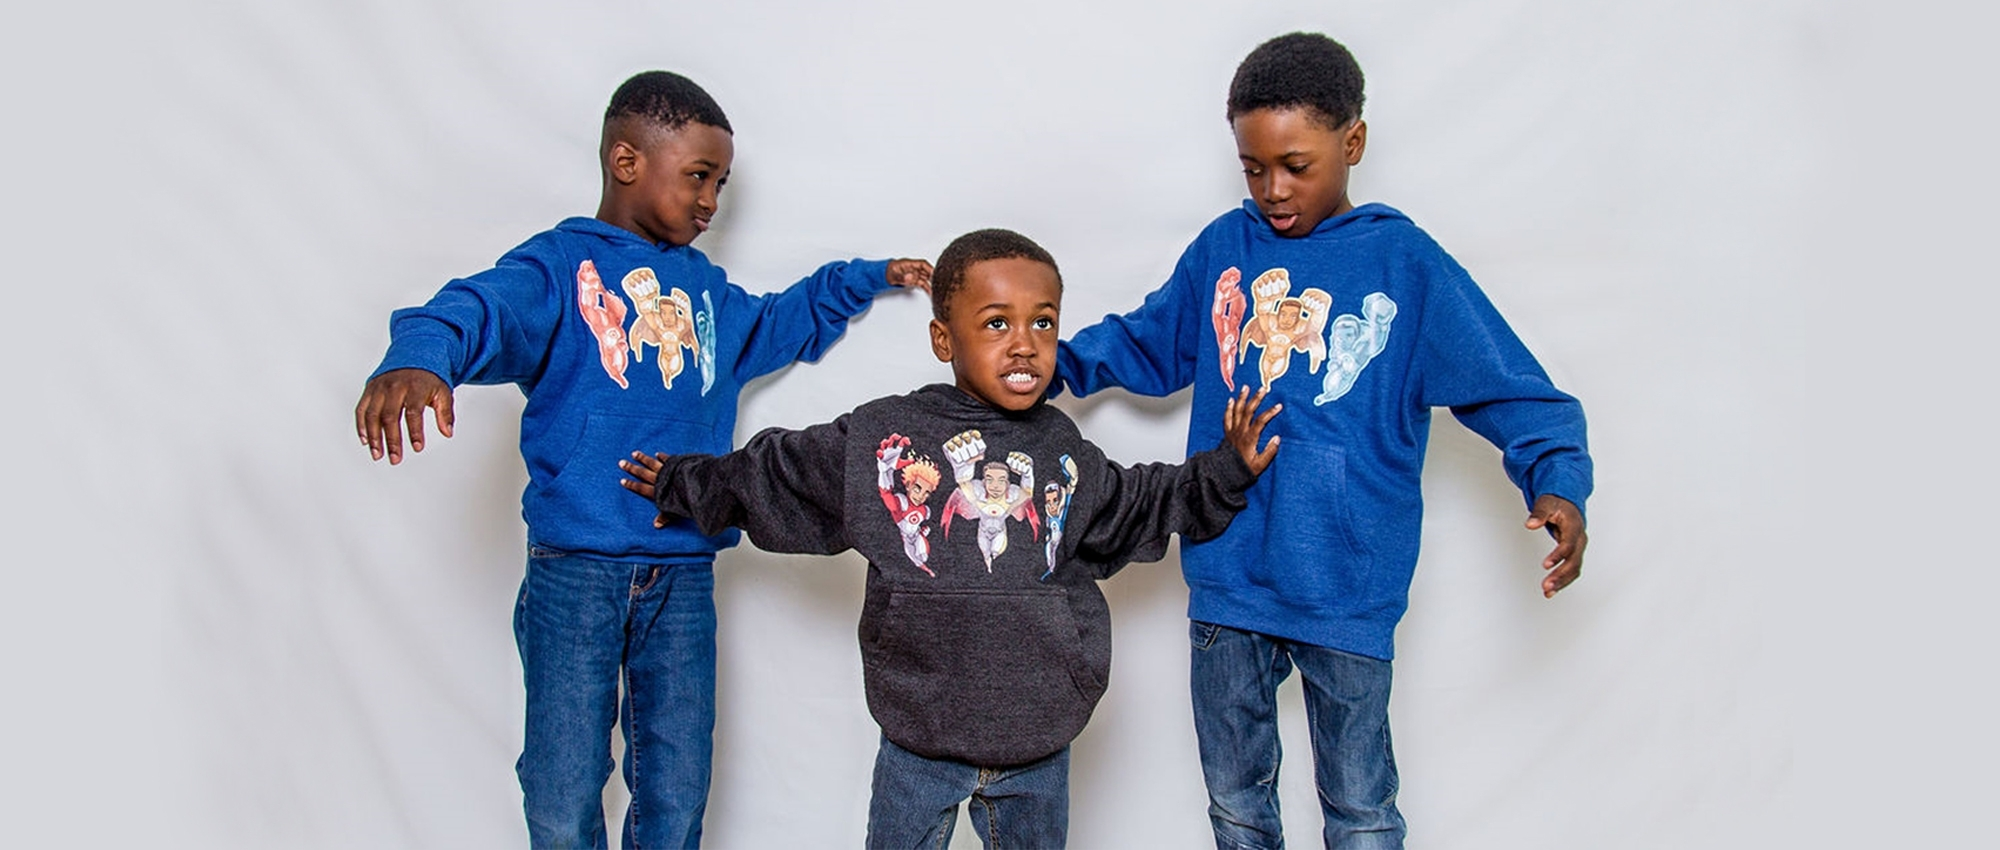 Hezekiah, Joiakim and Micah Felix pose in shirts that display the superhero characters in the book The Battle of Ottogatz.